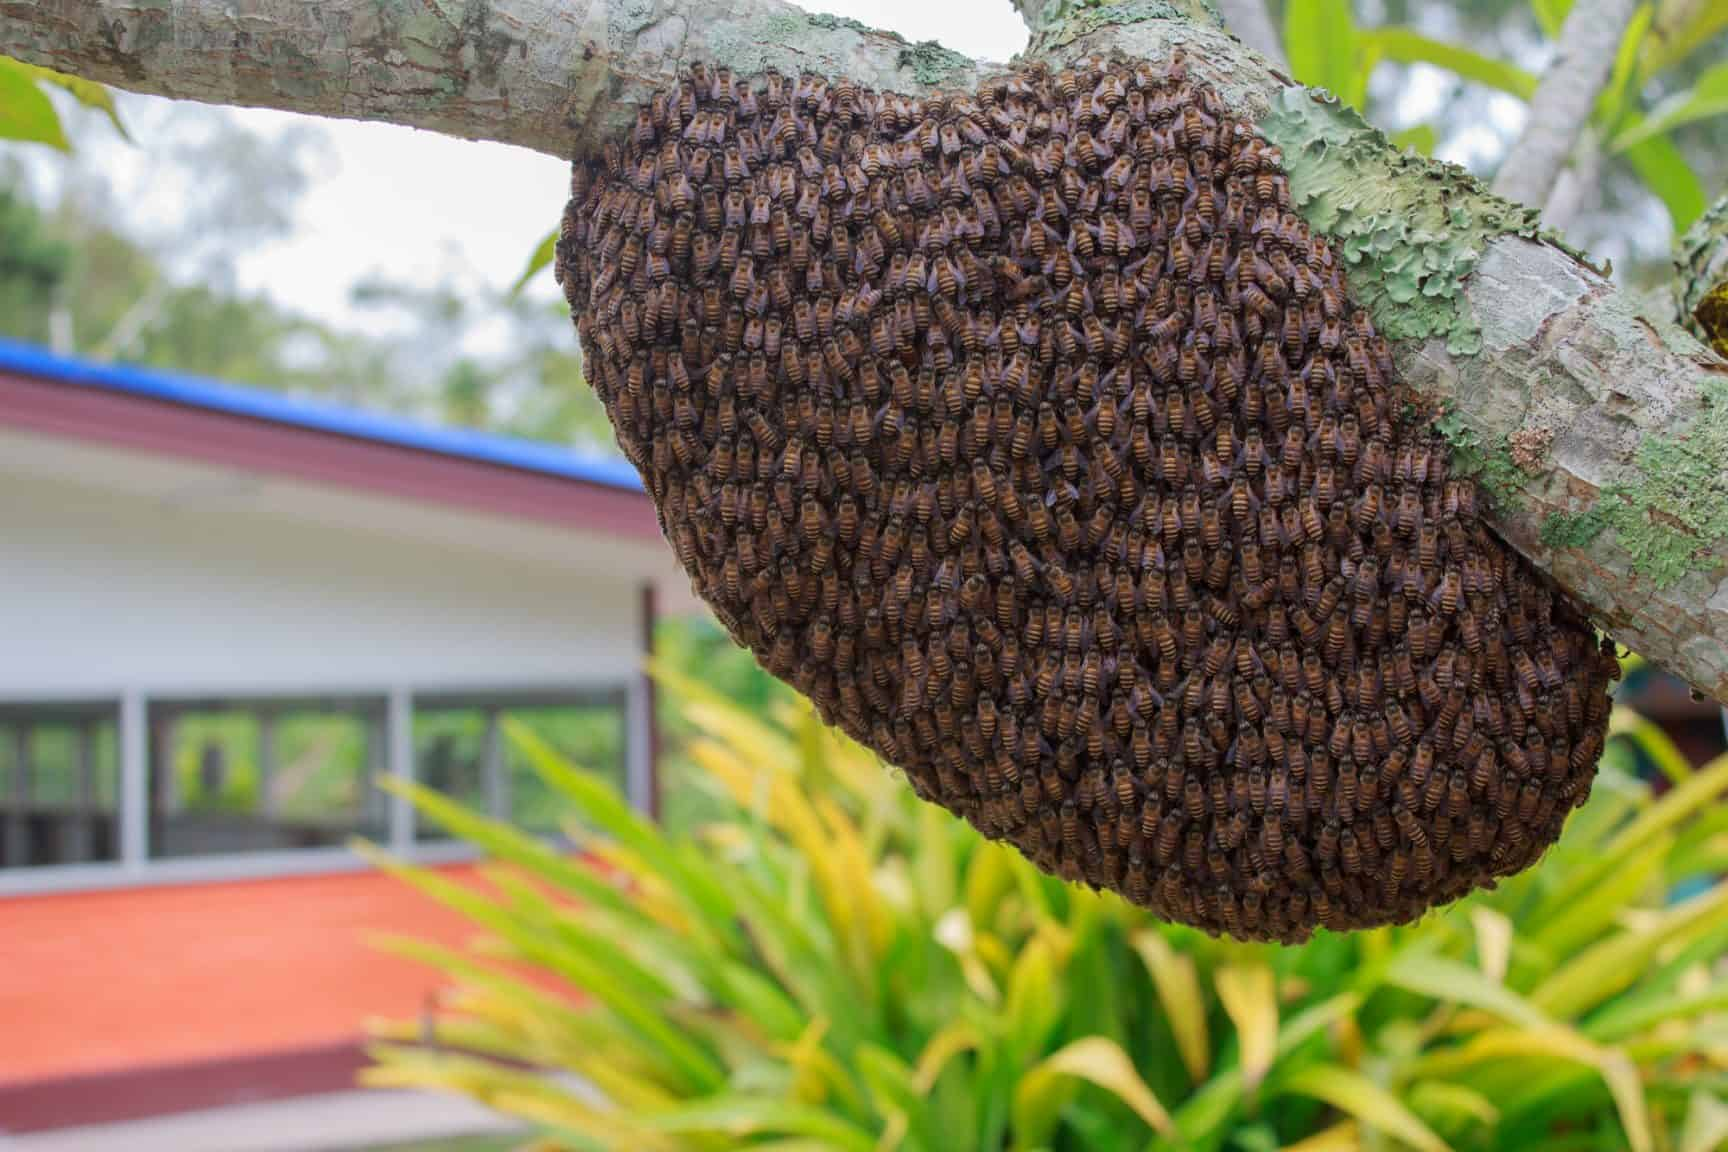 Bee swarm on a tree branch